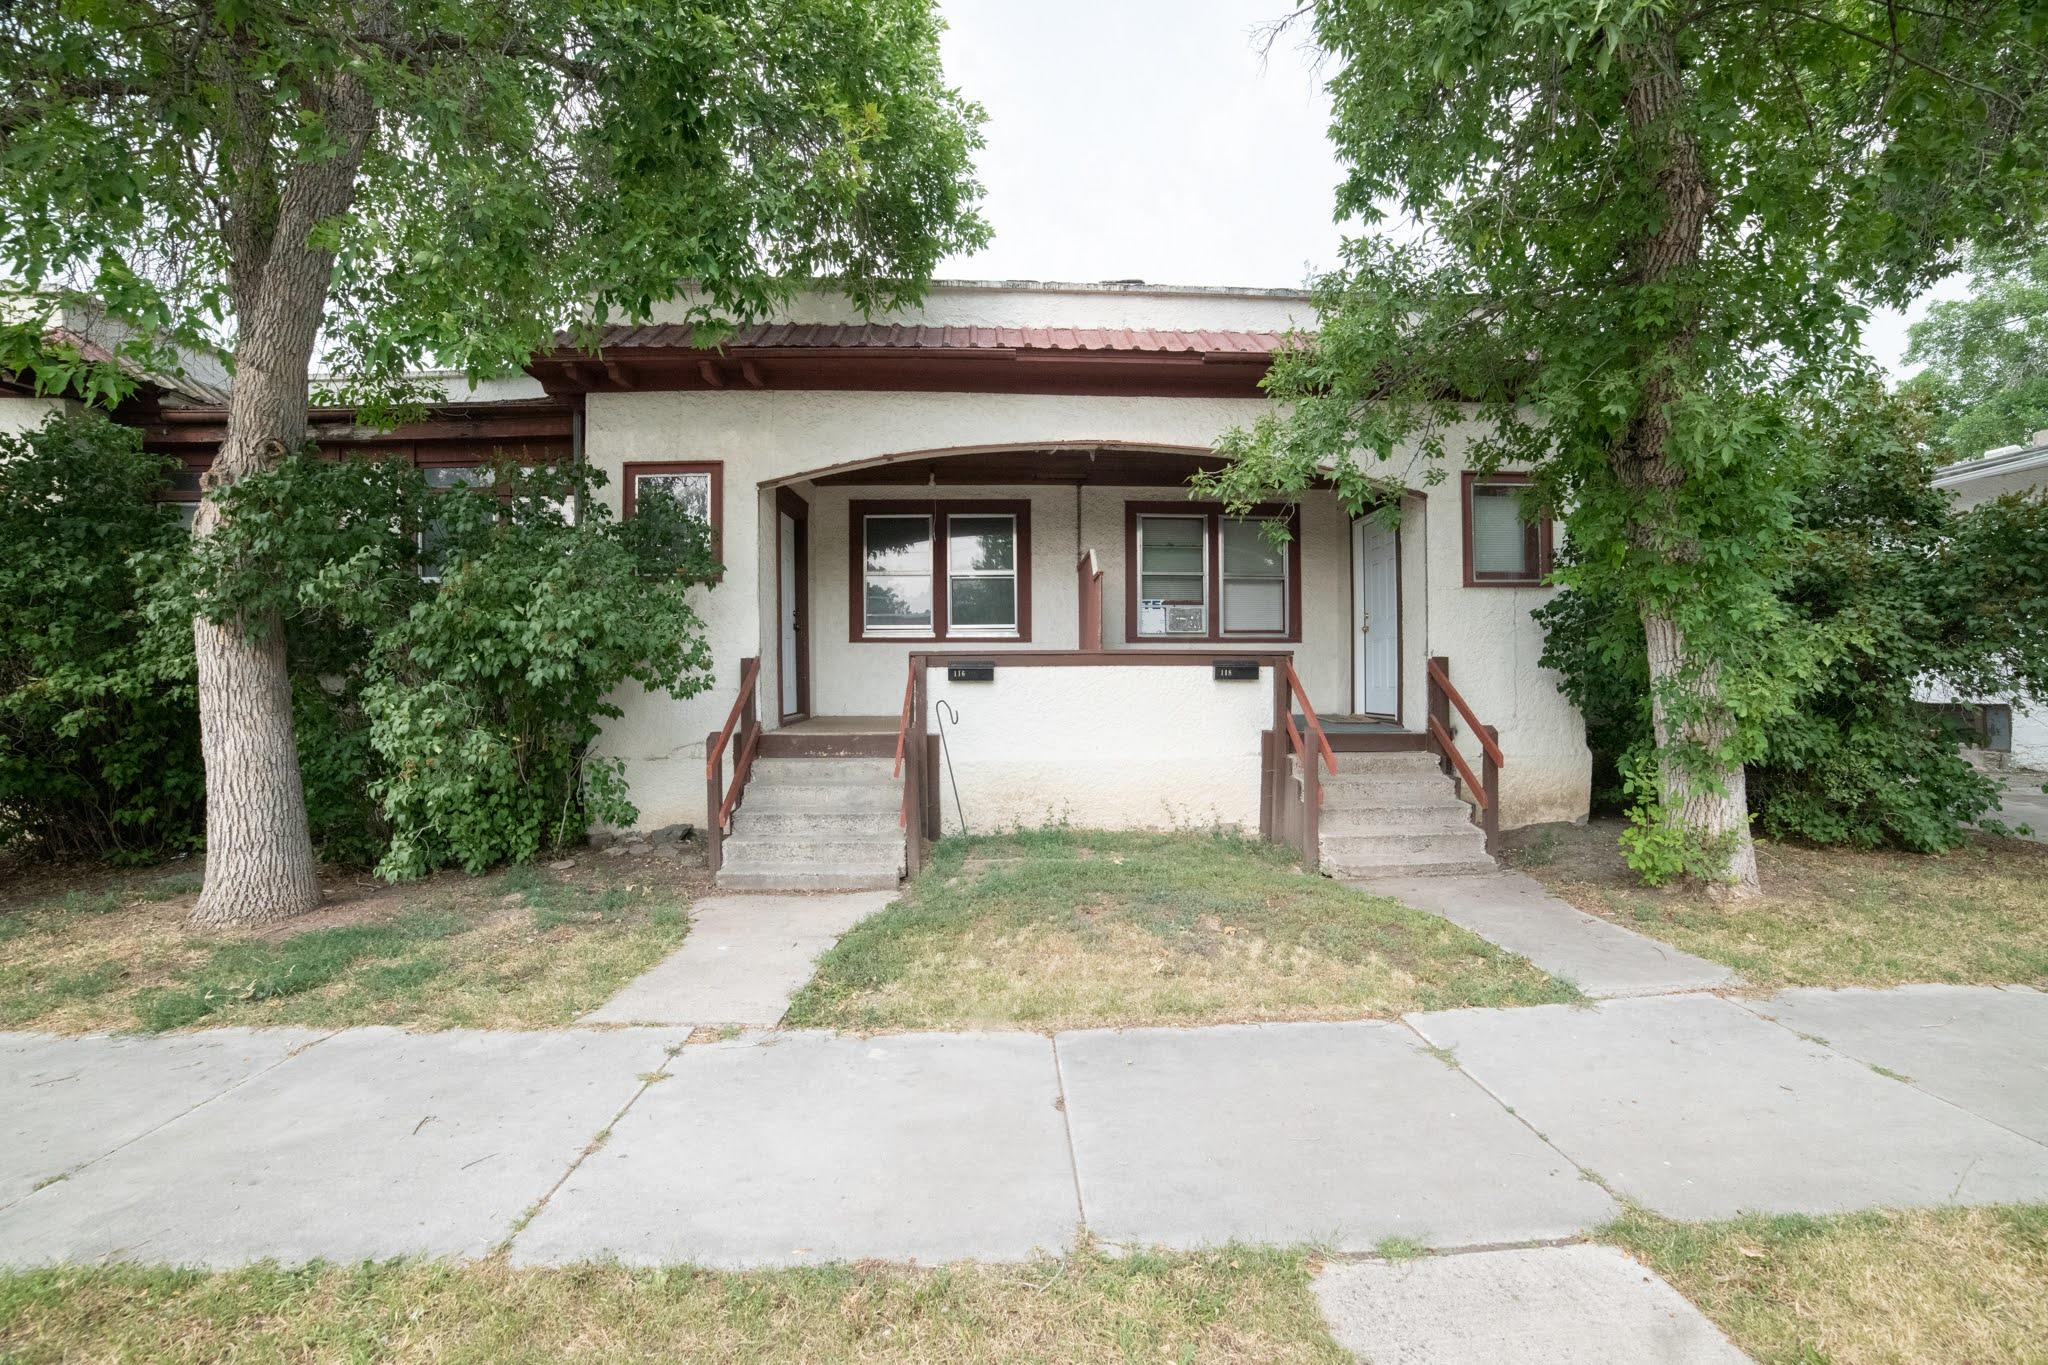 Multi family property. 3 units currently rented. 3 units are 2 bedroom, 1 bathroom. 1 unit is 1 bedroom, 1 bathroom. Each unit has basement with washer and dryer hook ups. Each unit is separately metered gas, electric & water. Selling AS IS seller will make no repairs. call your real estate professional today!